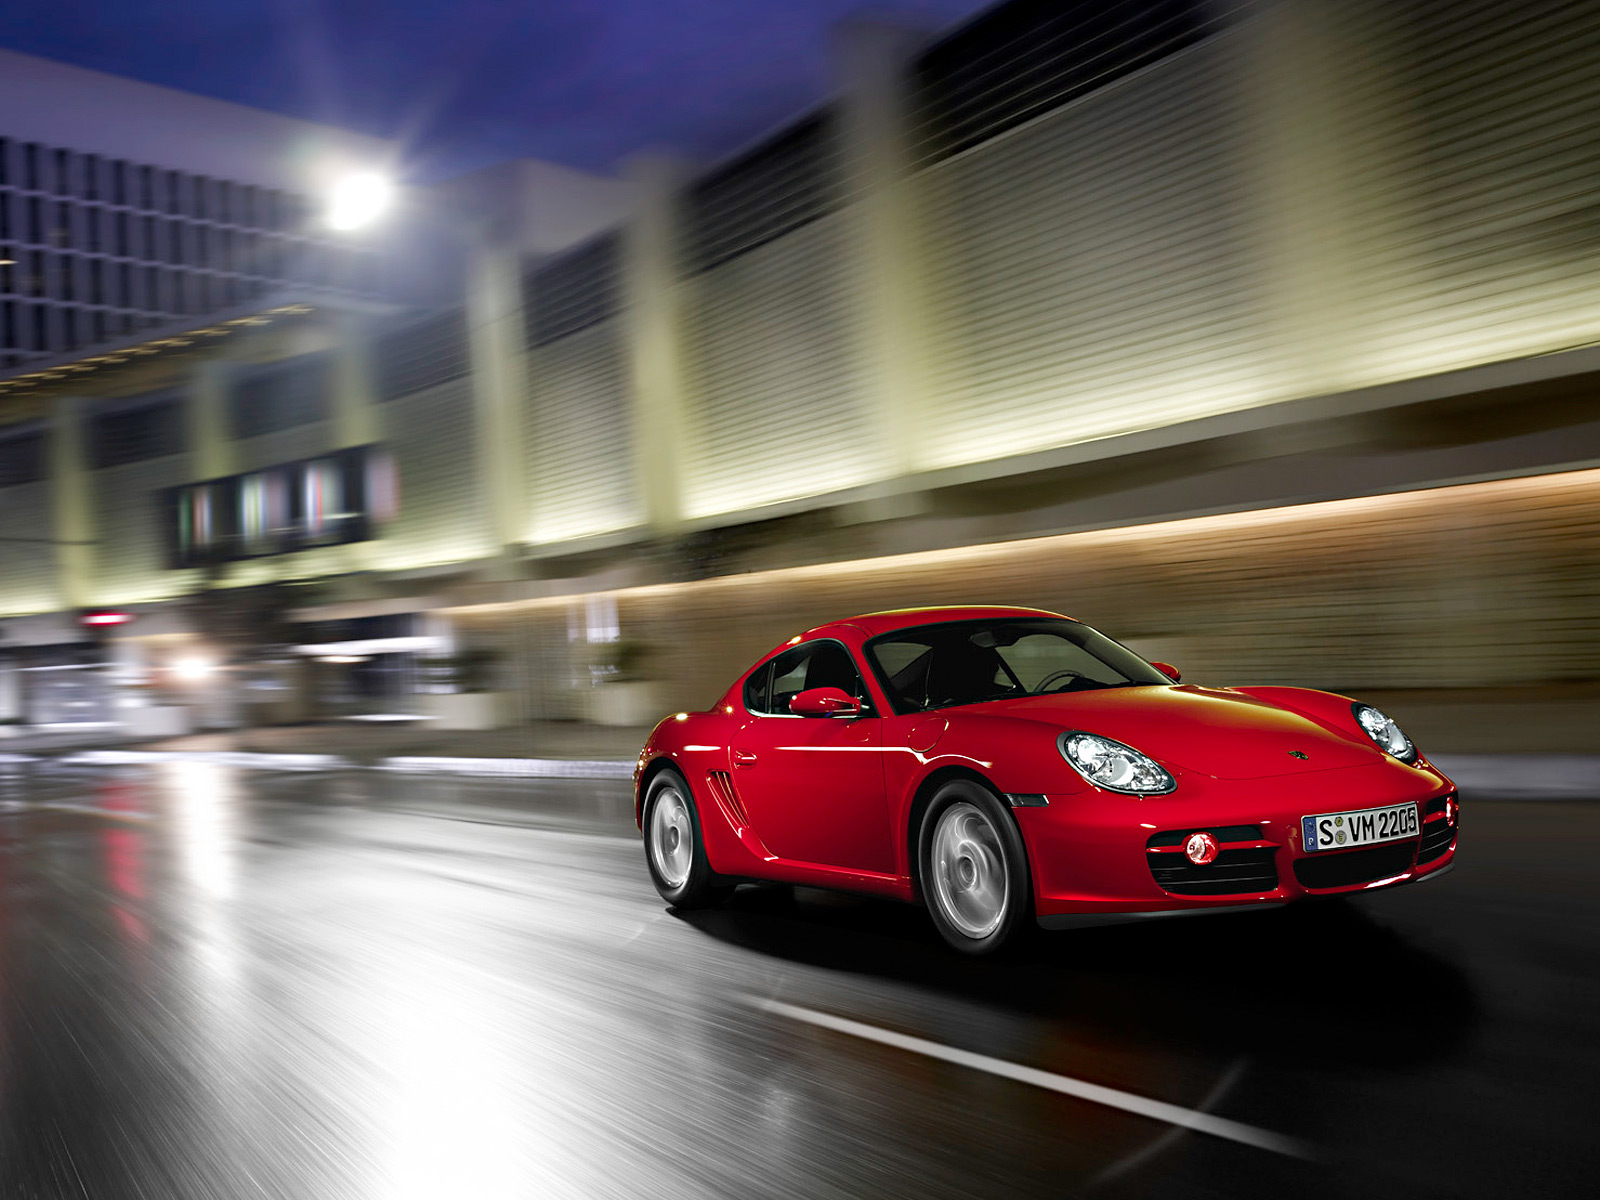 Desktop wallpaper with red car Porshe Cayman.